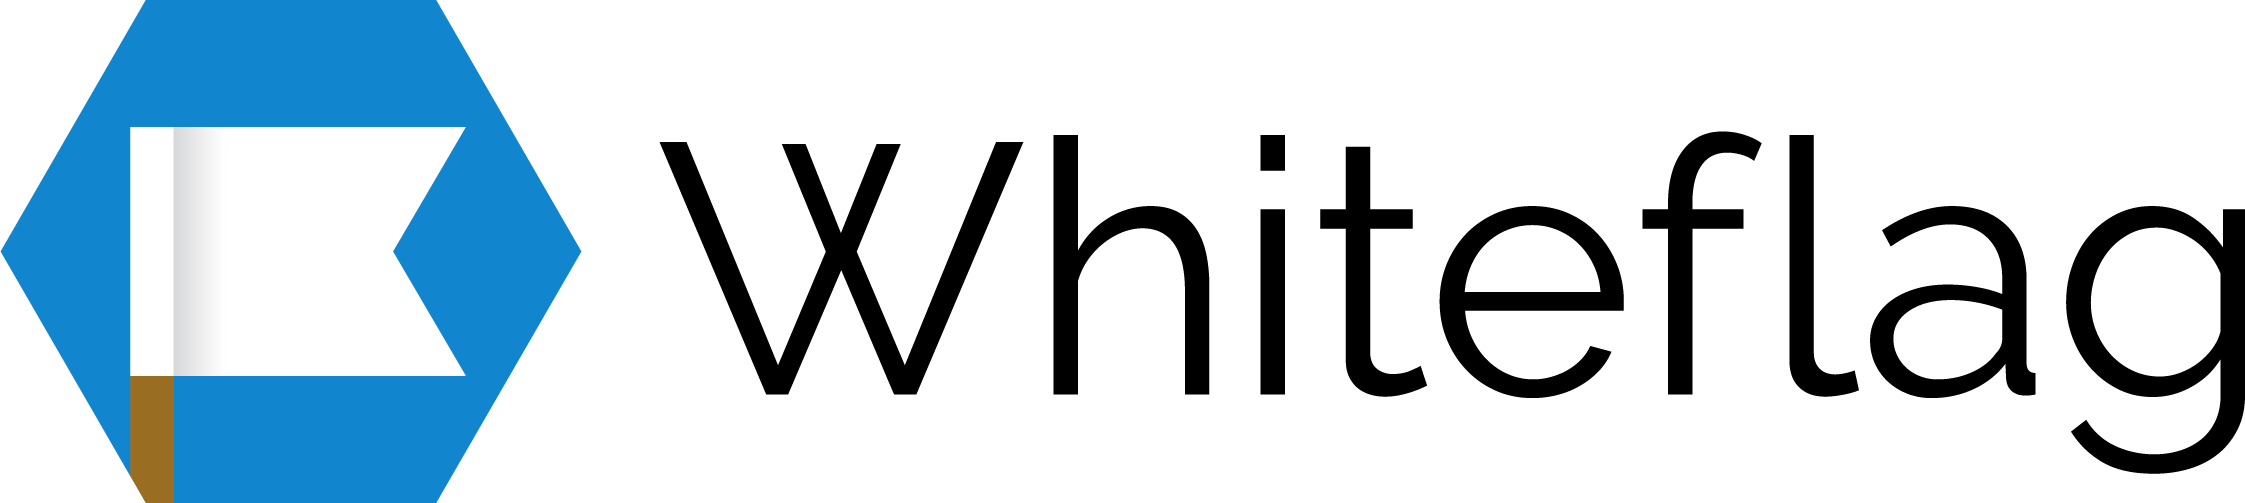 Whiteflag-logo-with-text-full-color.png